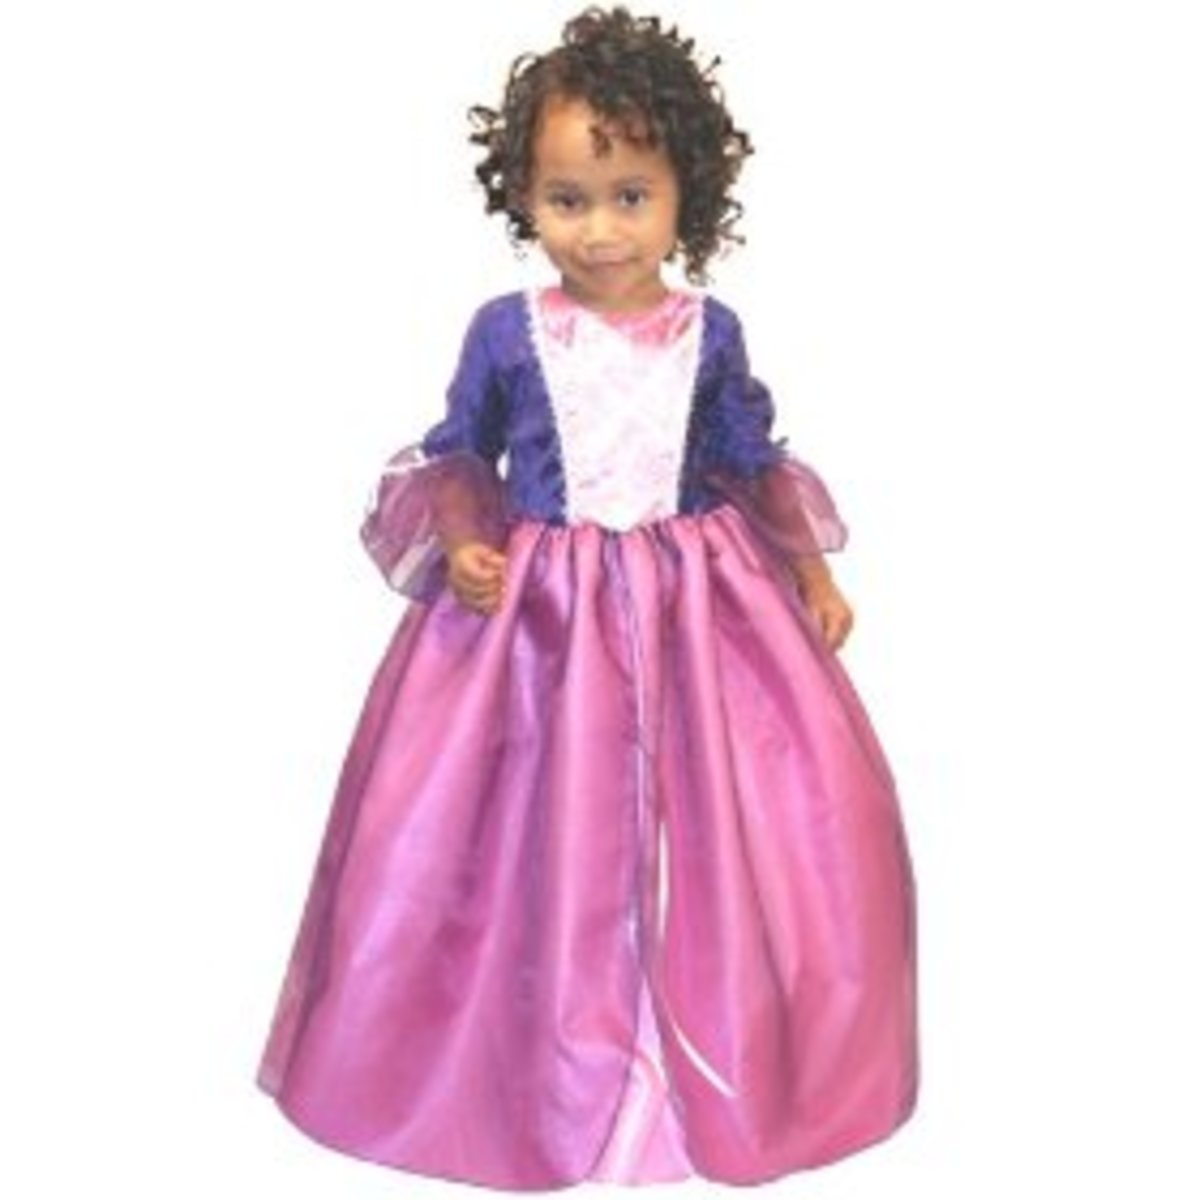 The little princess costume is a Halloween Classic